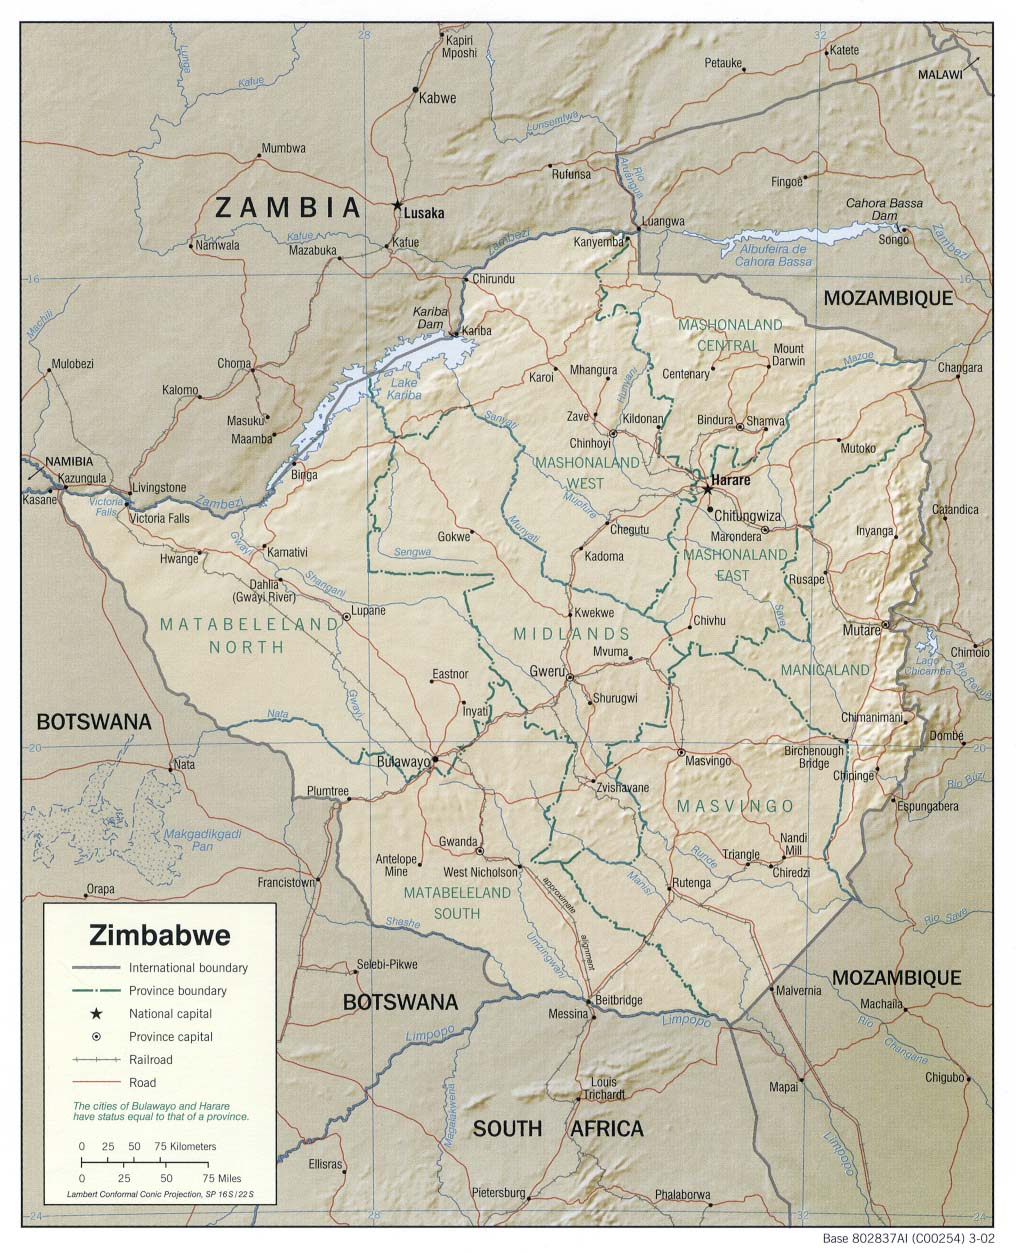 Map Of South Africa And Zimbabwe.Zimbabwe Maps Perry Castaneda Map Collection Ut Library Online